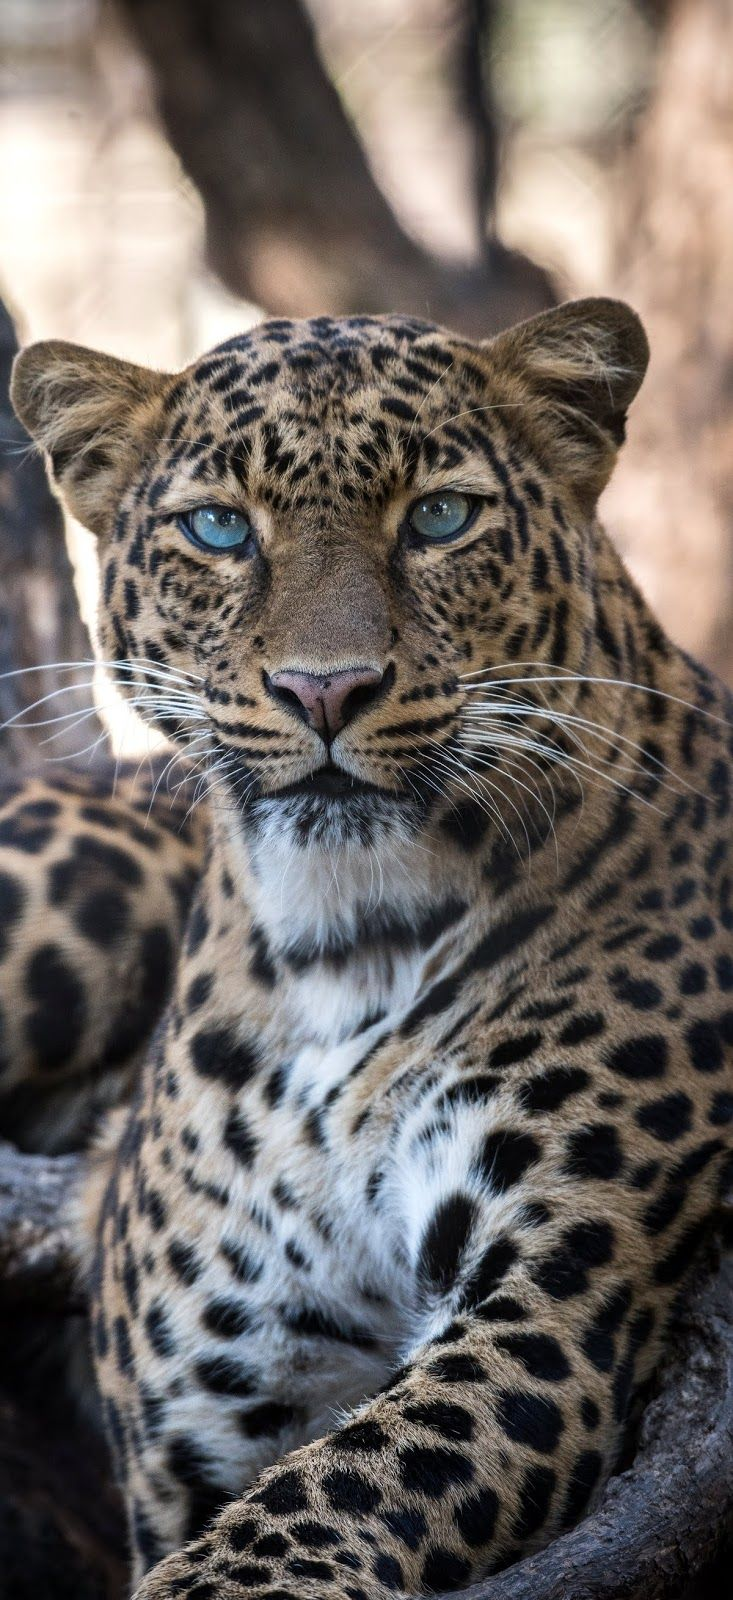 About Wild Animals Portrait Of A Leopard Jaguar Hybrid Jaguar Animal Wild Animals Photos Animals Beautiful